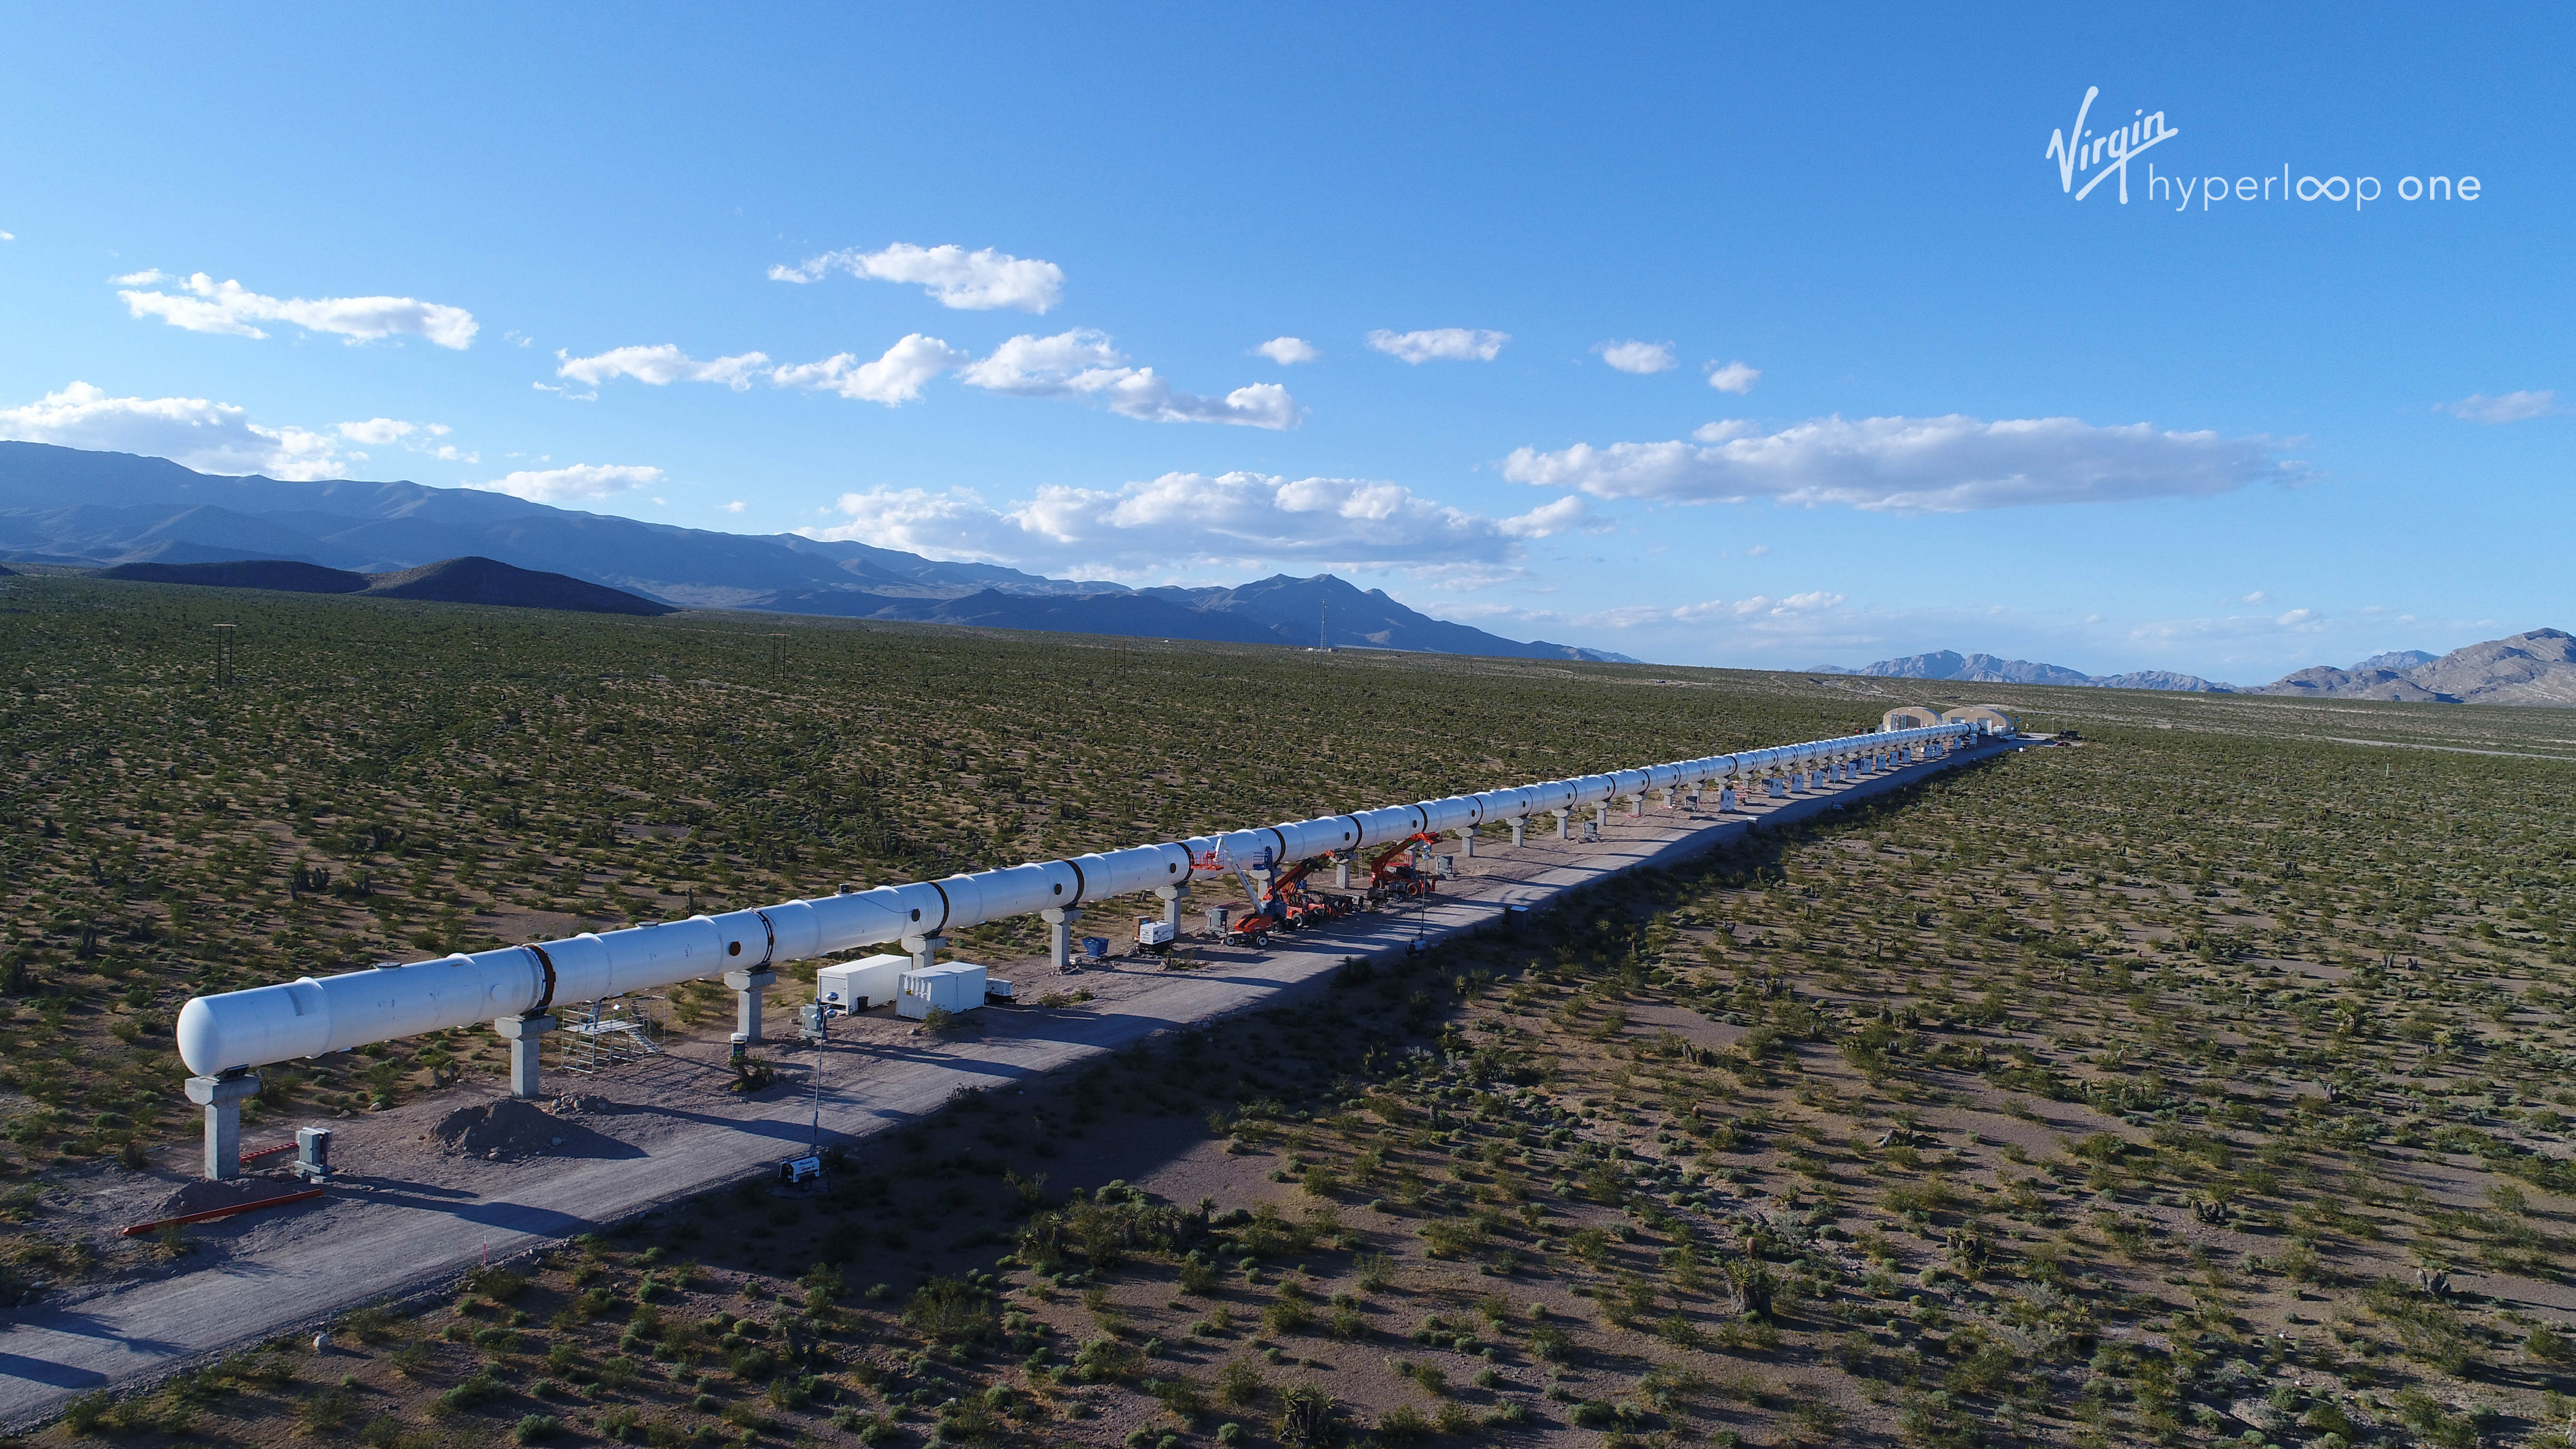 Virgin_Hyperloop_One_6.jpg